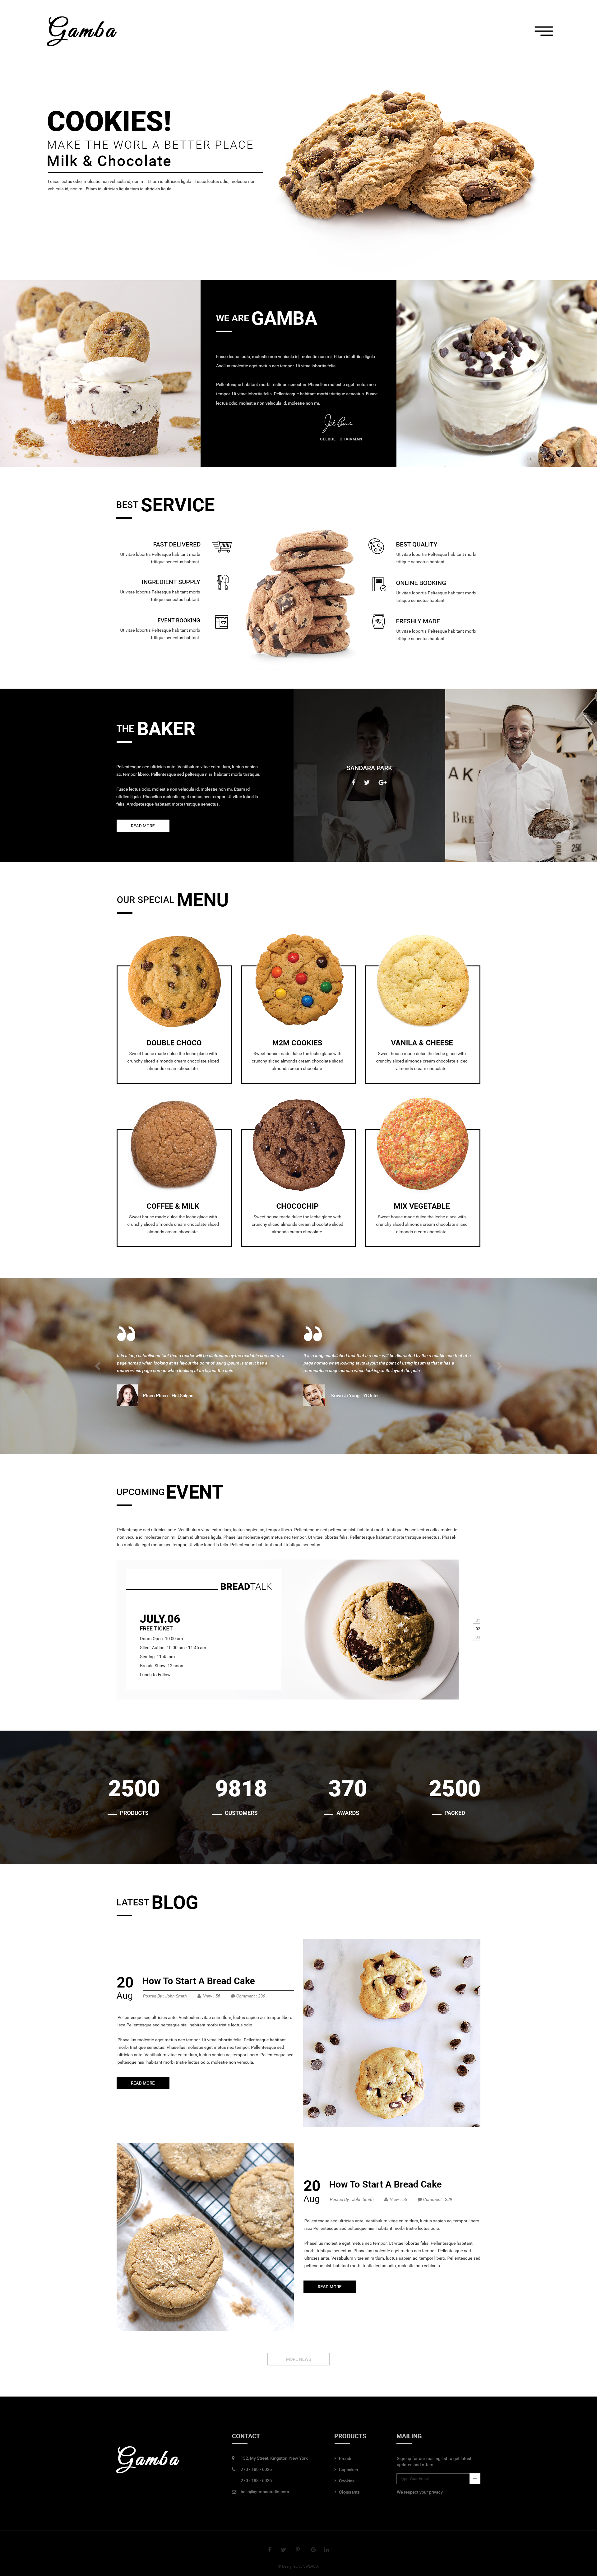 Gamba bakery cakery pizza pastry shop psd template gamba gamba bakery cakery pizza pastry shop psd template pronofoot35fo Images